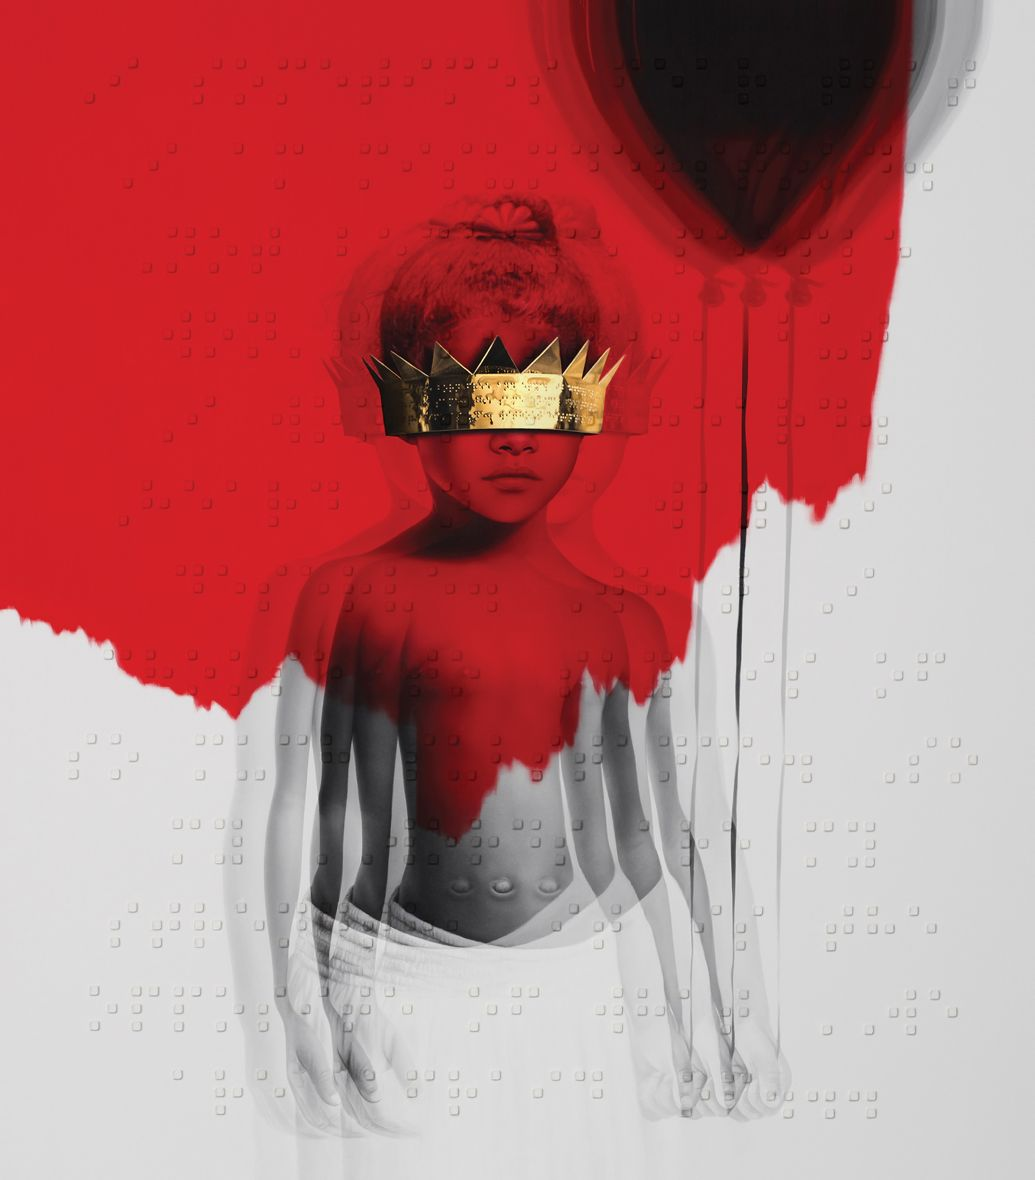 Rihanna tour date in New Orleans postponed